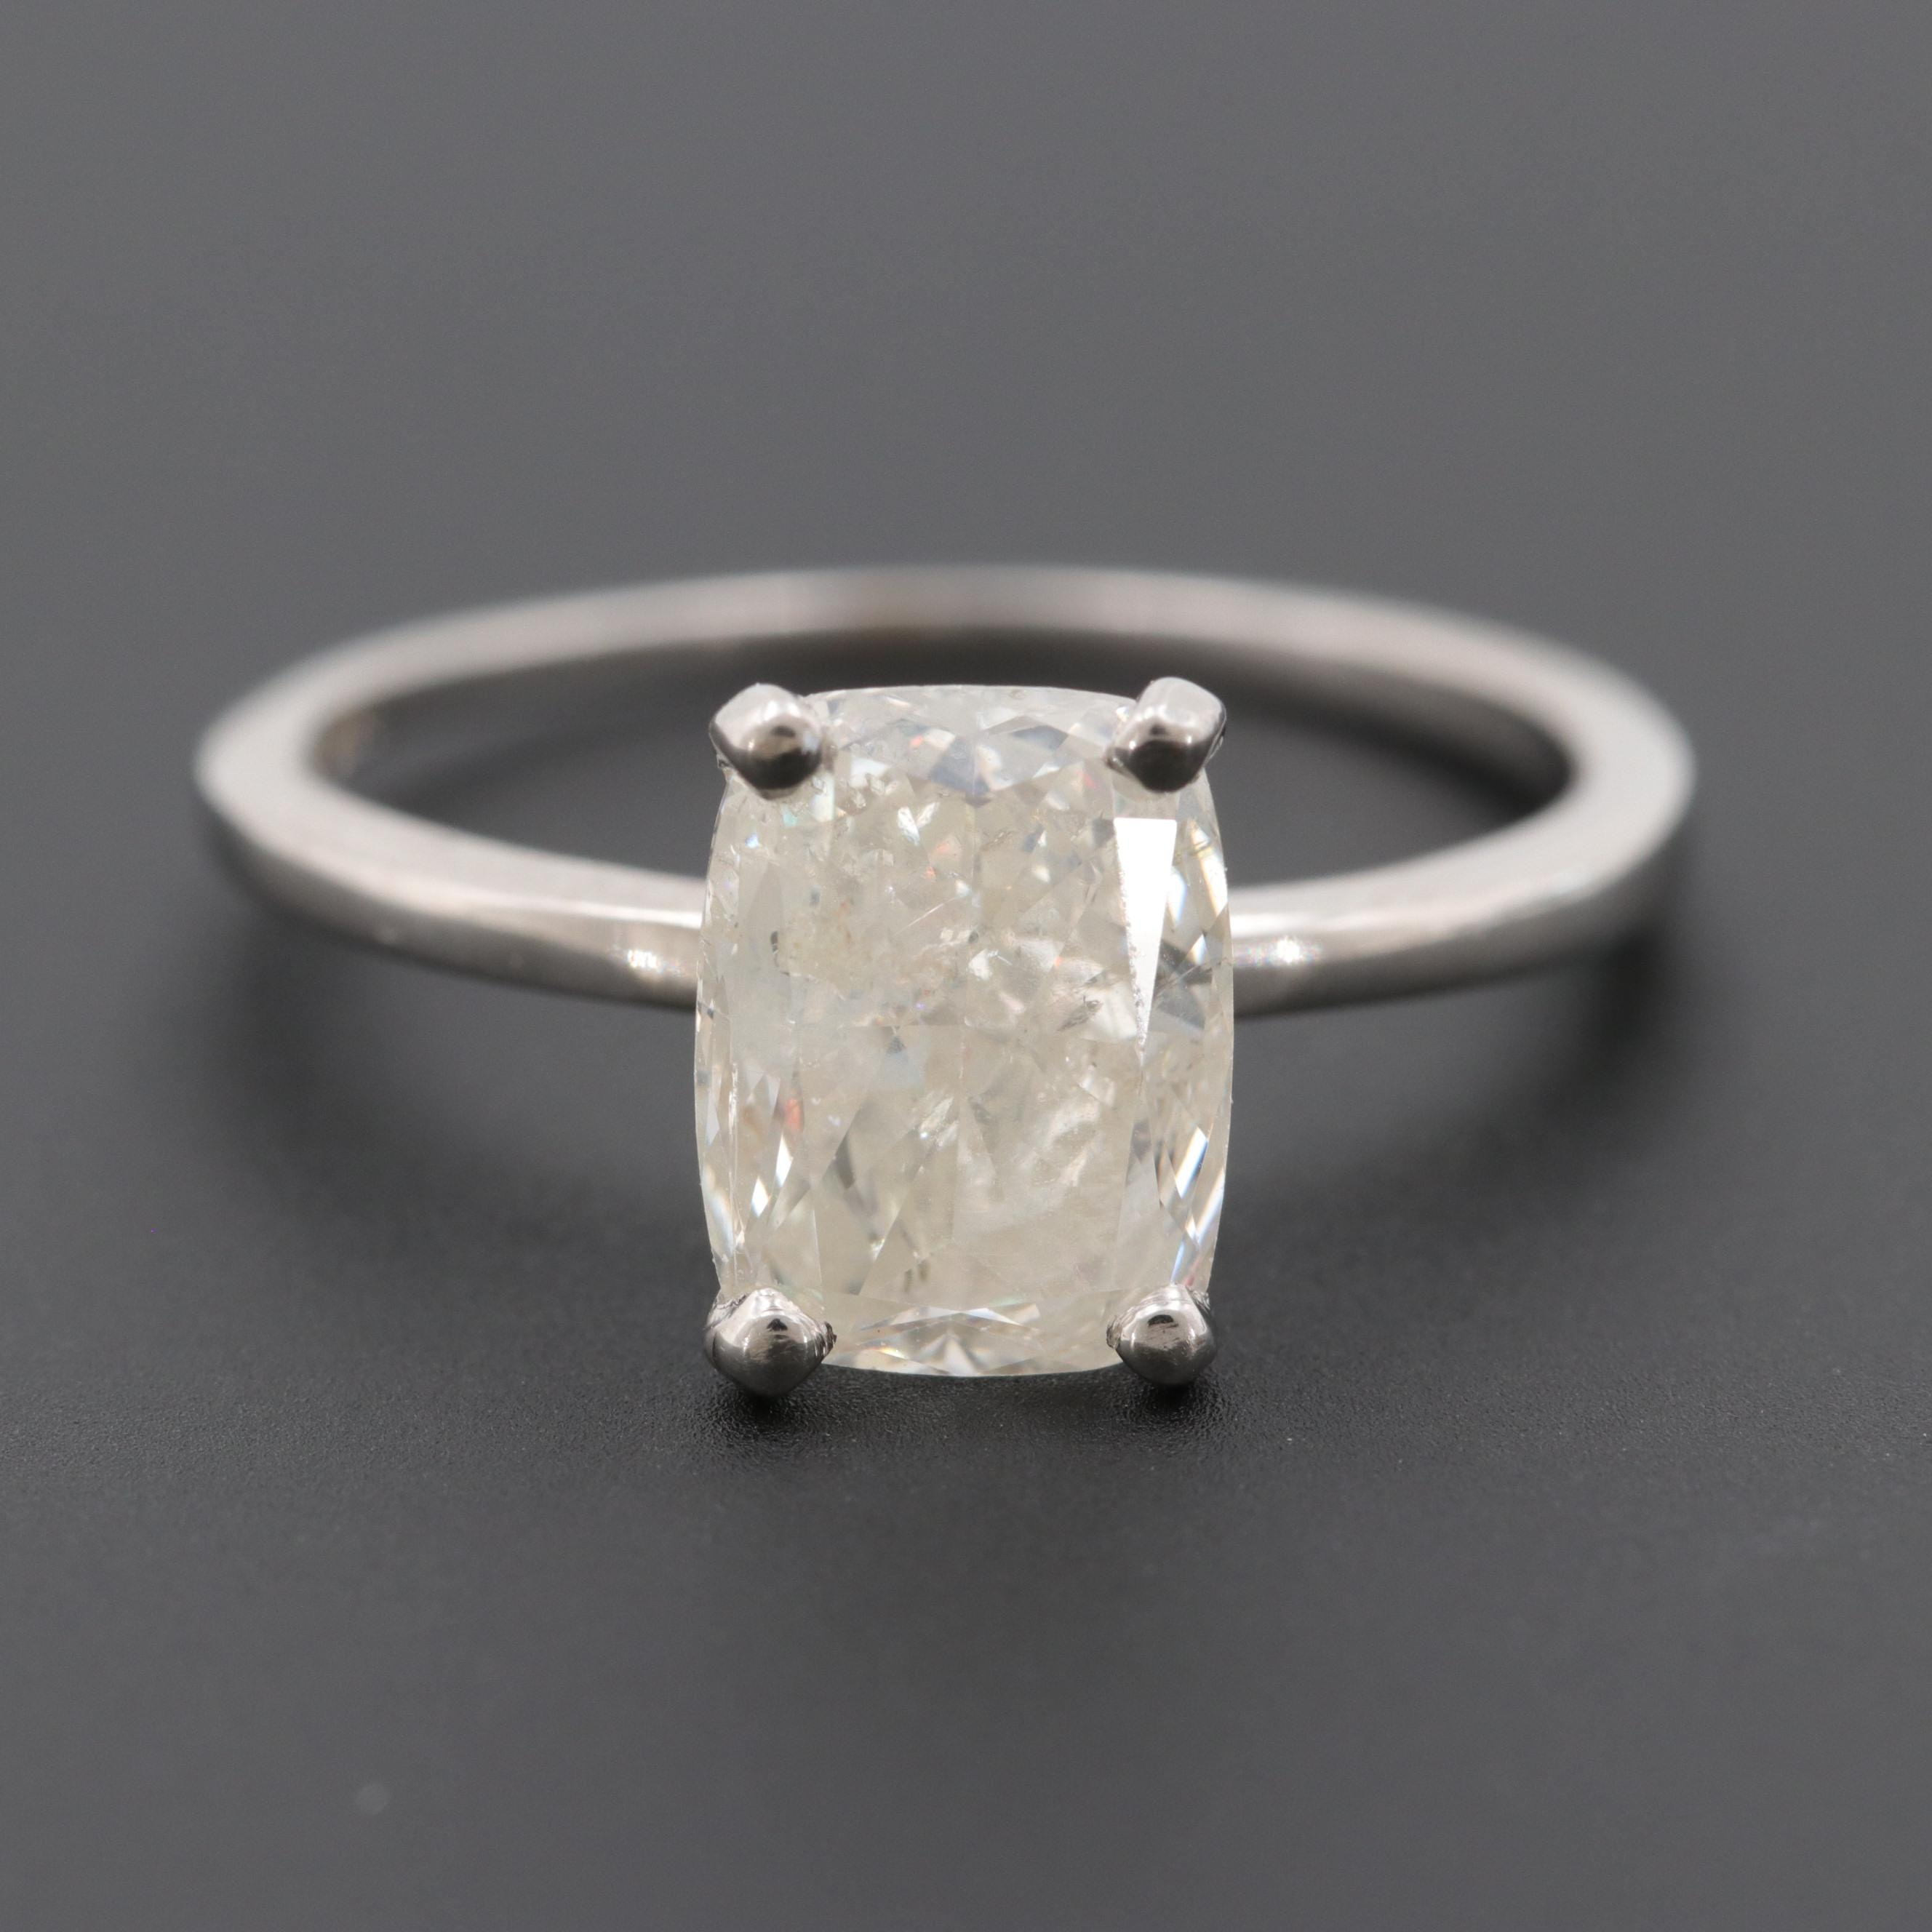 14K White Gold 1.71 CT Diamond Ring Solitaire